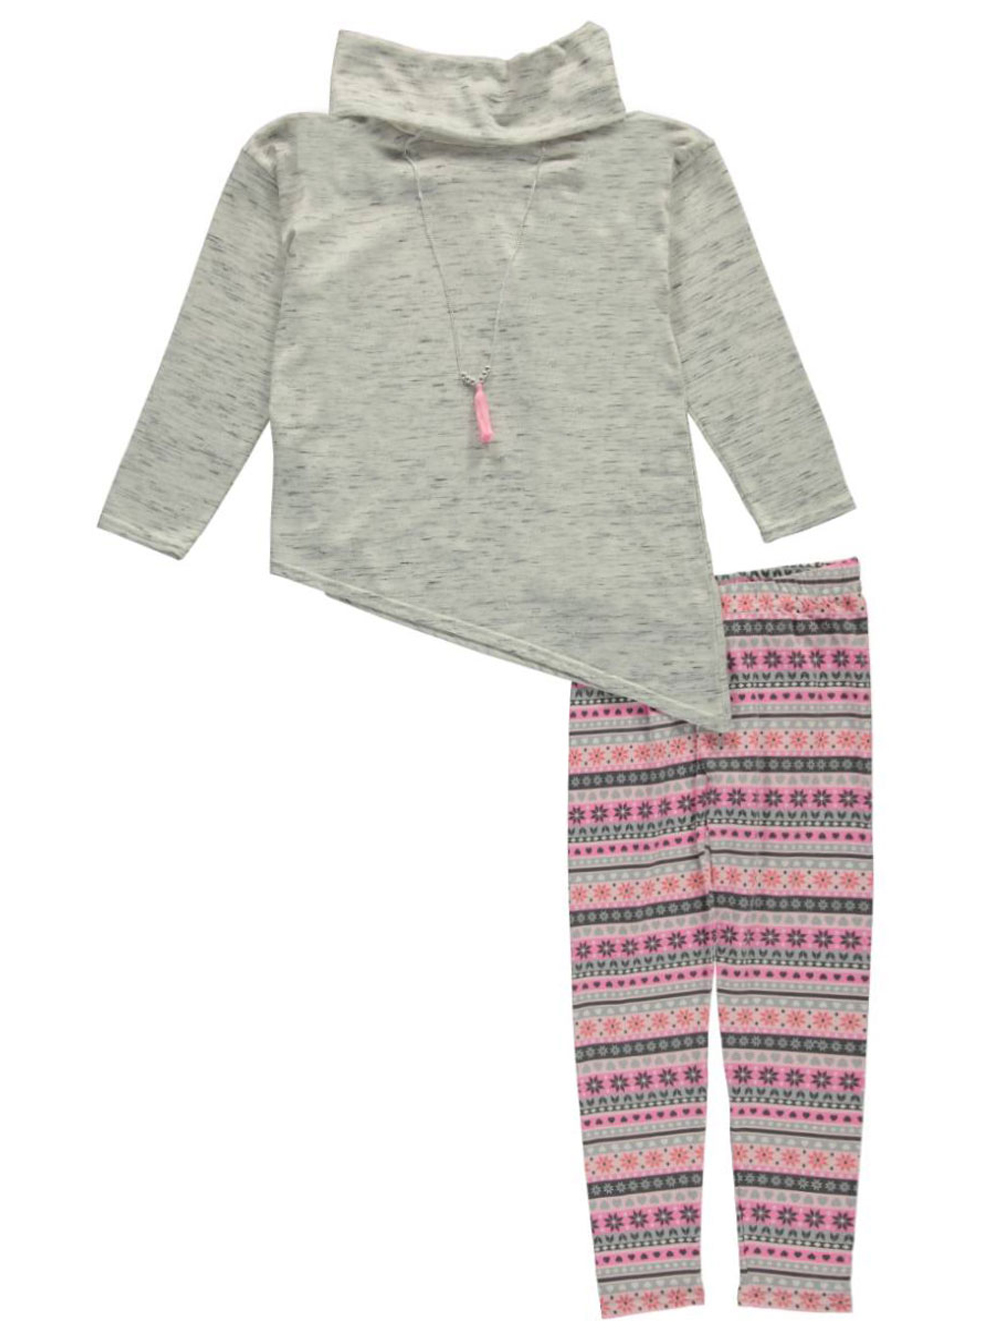 Image of Emily West Big Girls Wry Smile 2Piece Outfit with Necklace Sizes 7  16